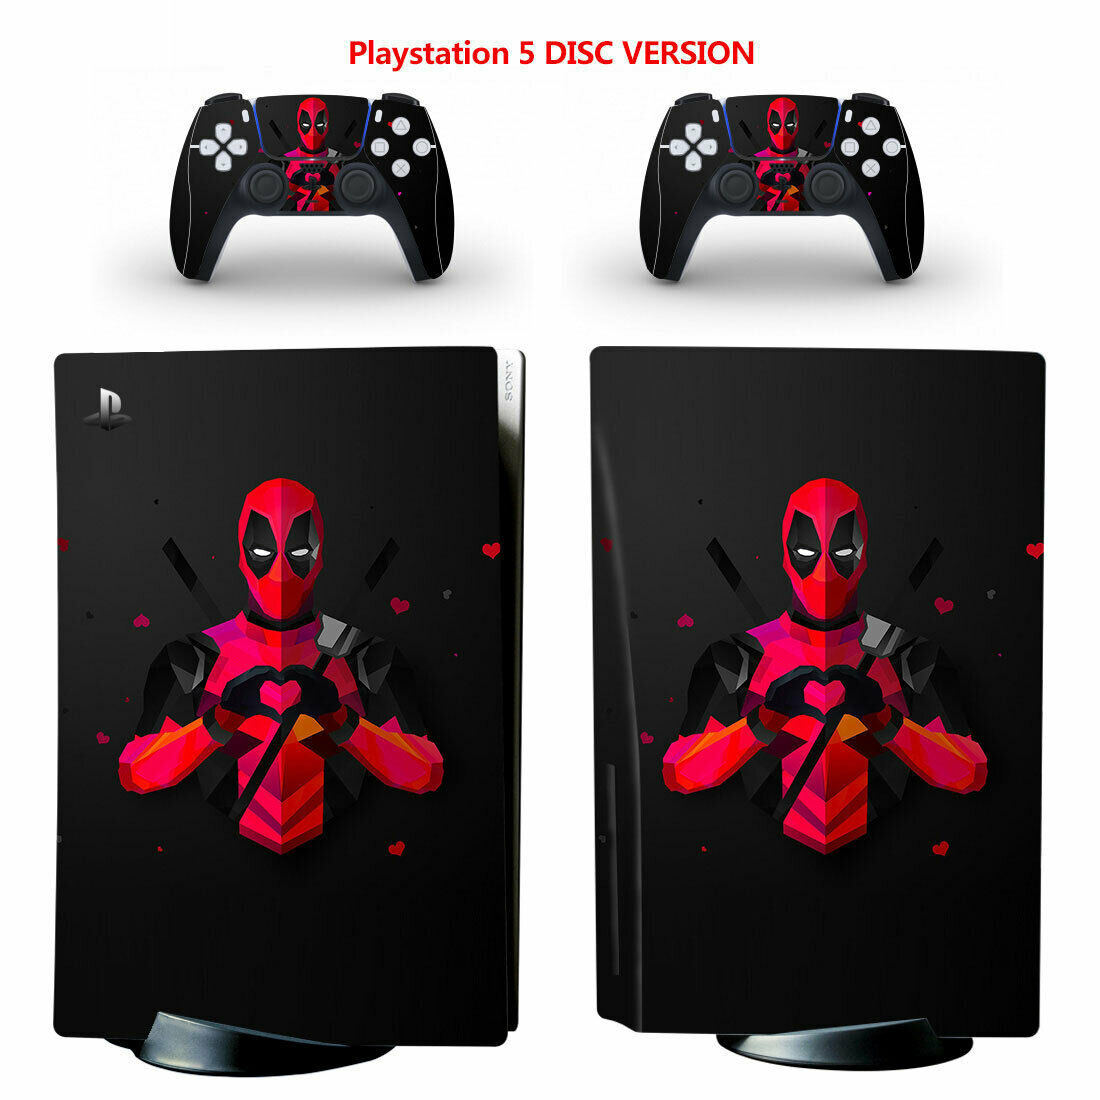 Deadpool PS5 PlayStation 5 Disc Console Controllers Vinyl Decal Skin Sticker